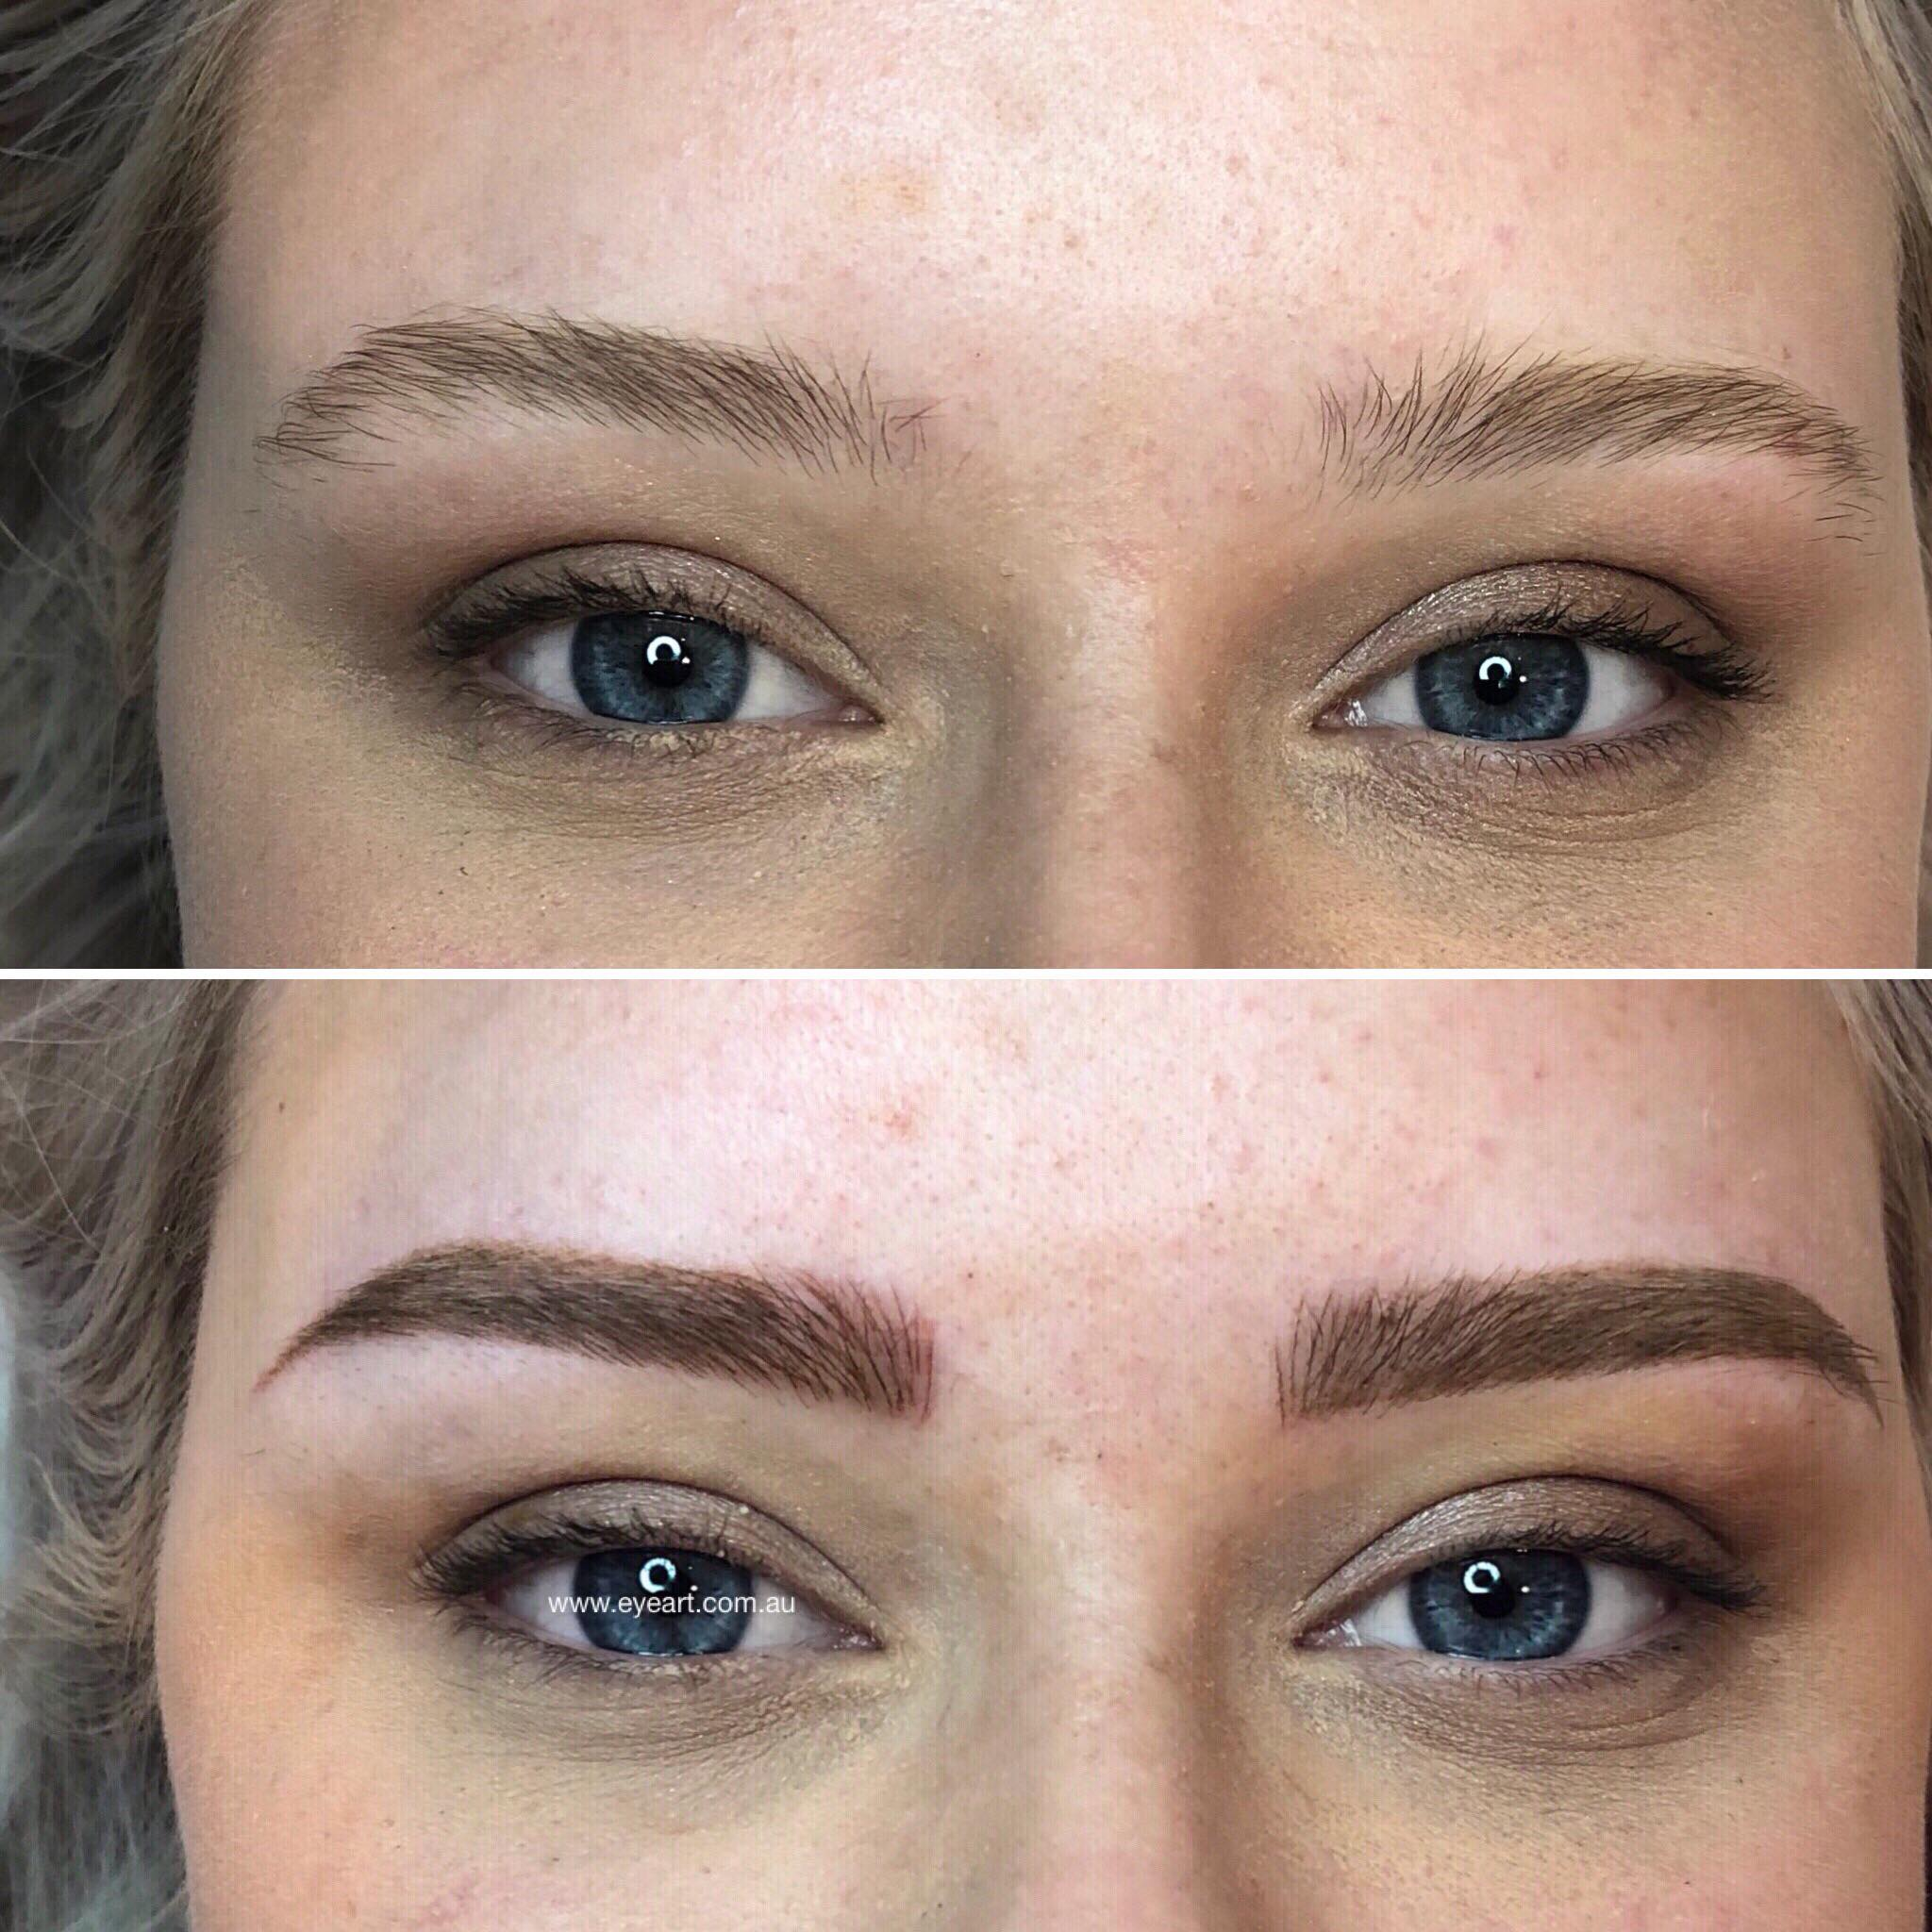 DIY How To Remove Botched Eyebrow Tattoo At Home SAFELY